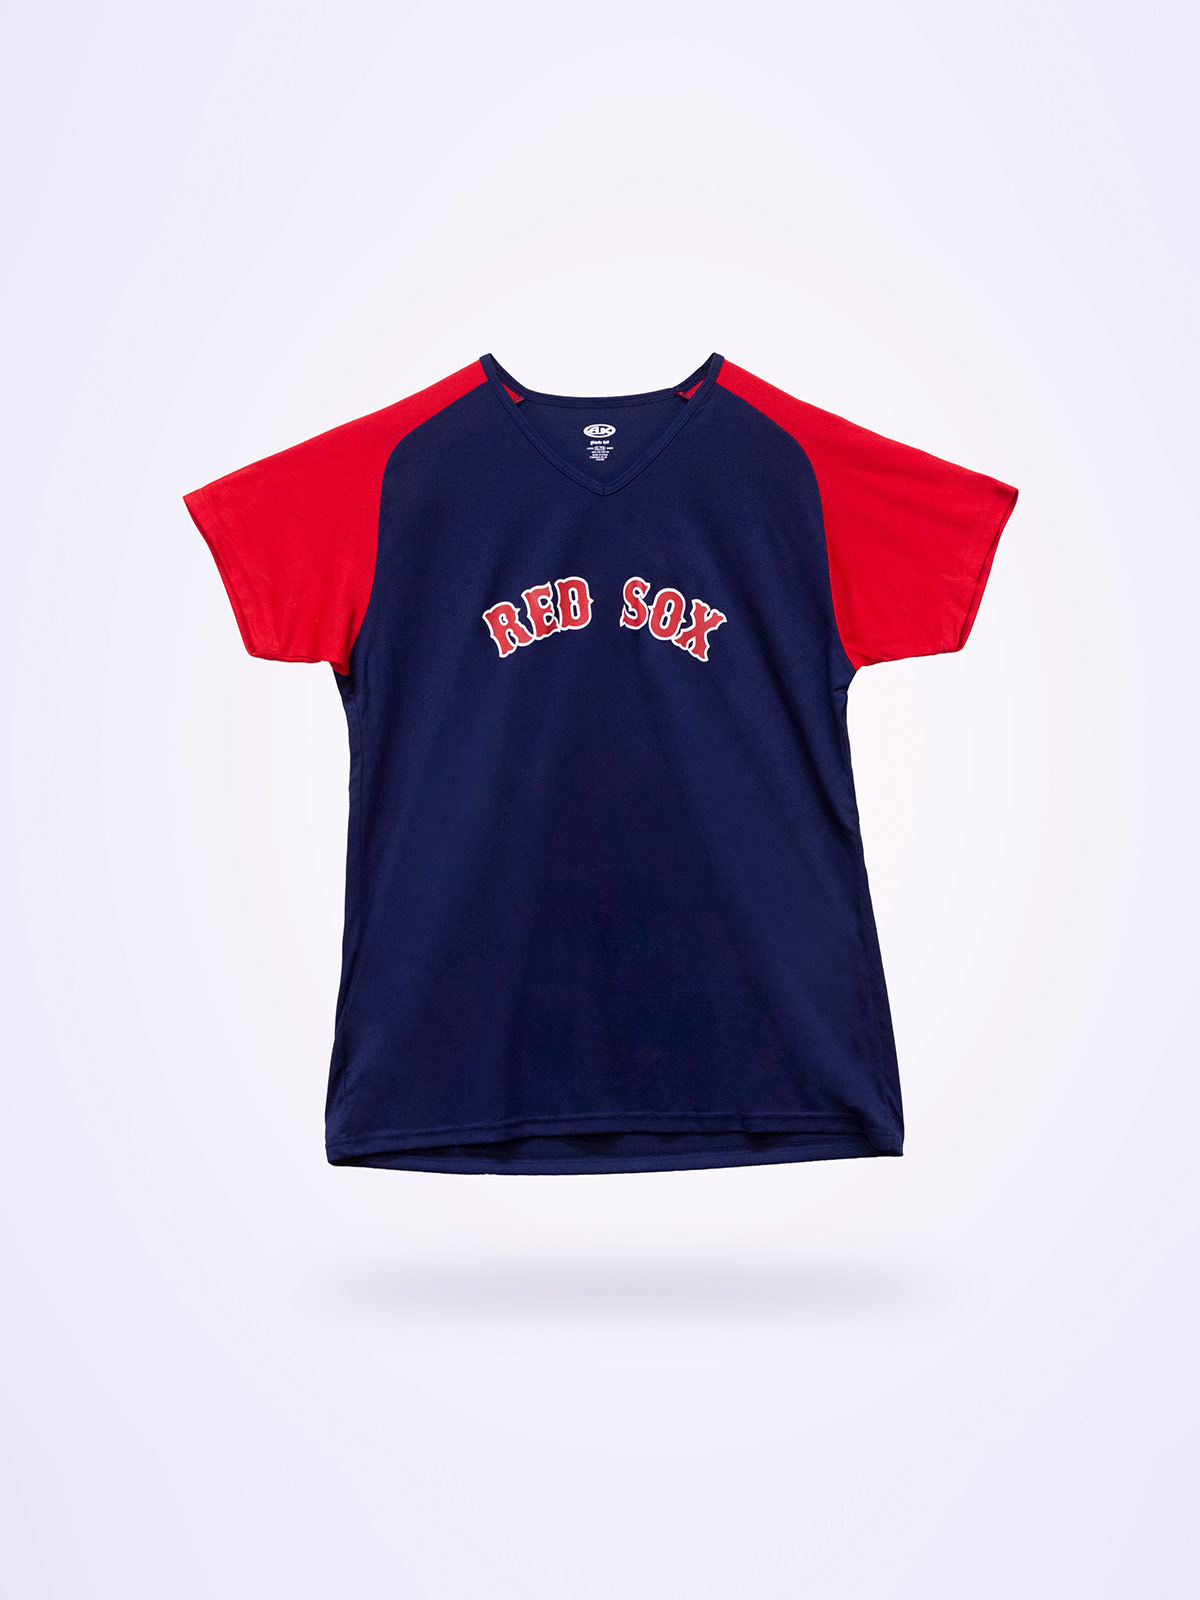 Mens Red Sox Fan Jersey - Navy/Red